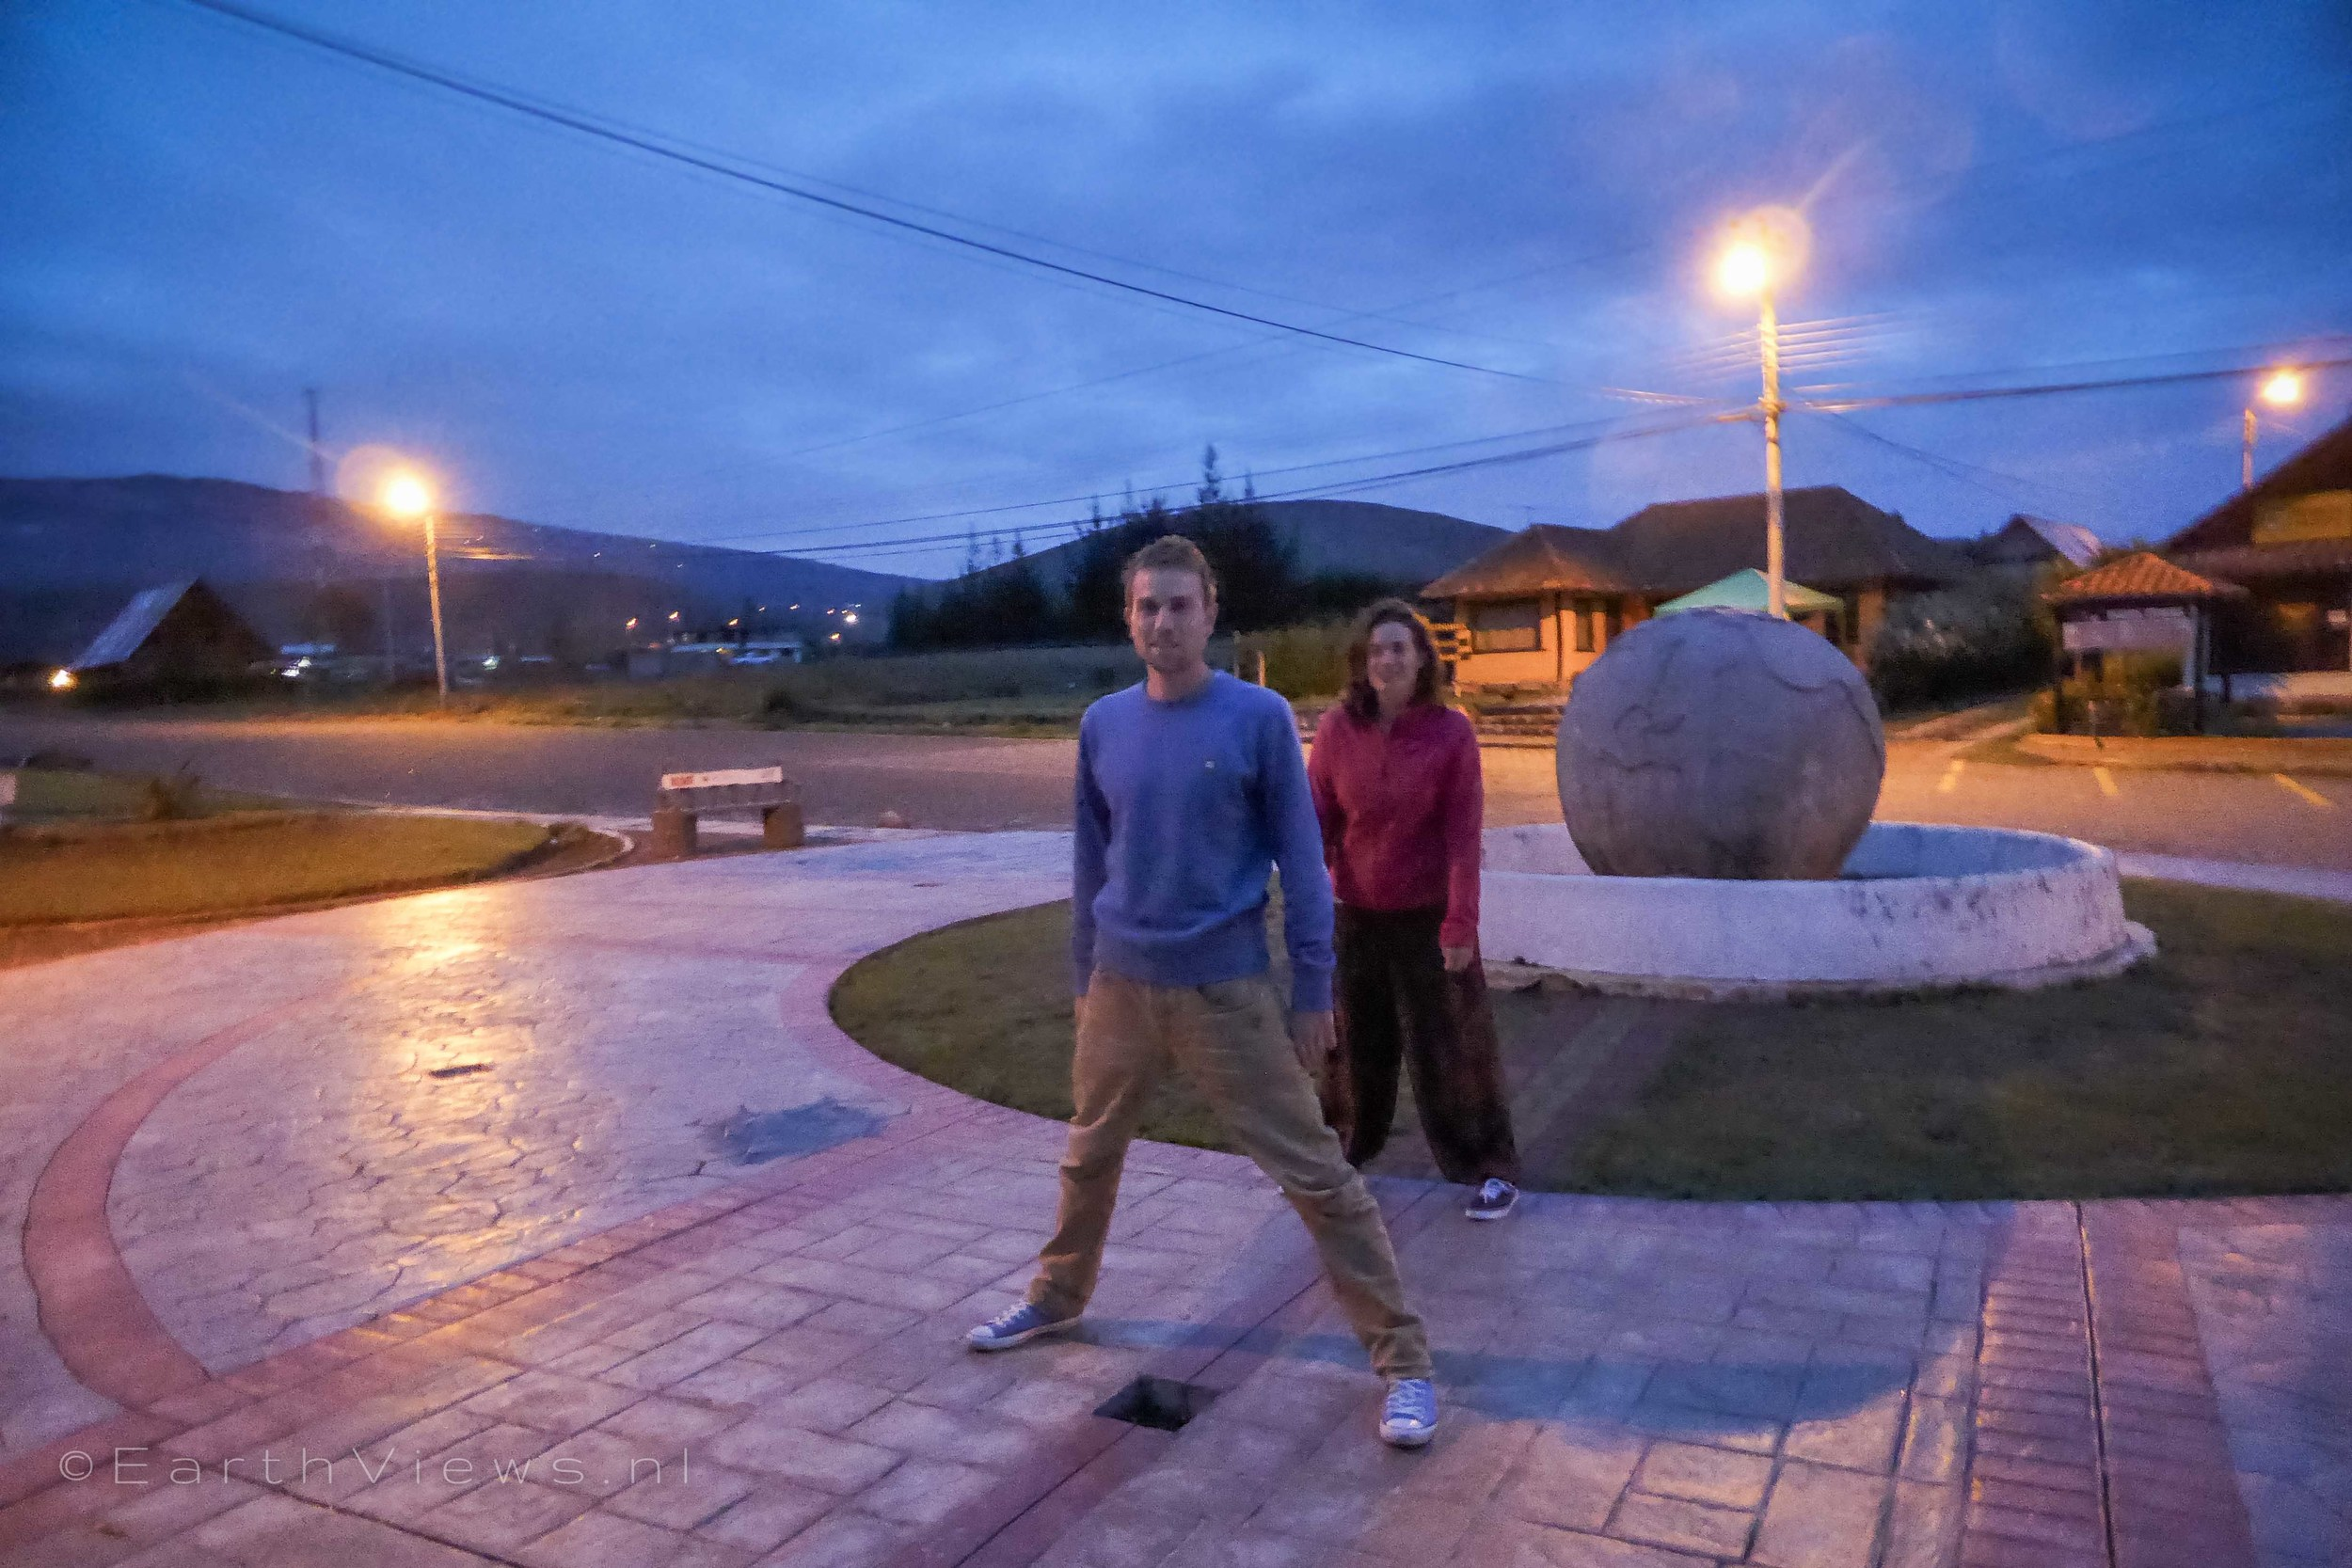 At the Equator: one leg in the Northern Hemisphere and one in the Southern Hemisphere.